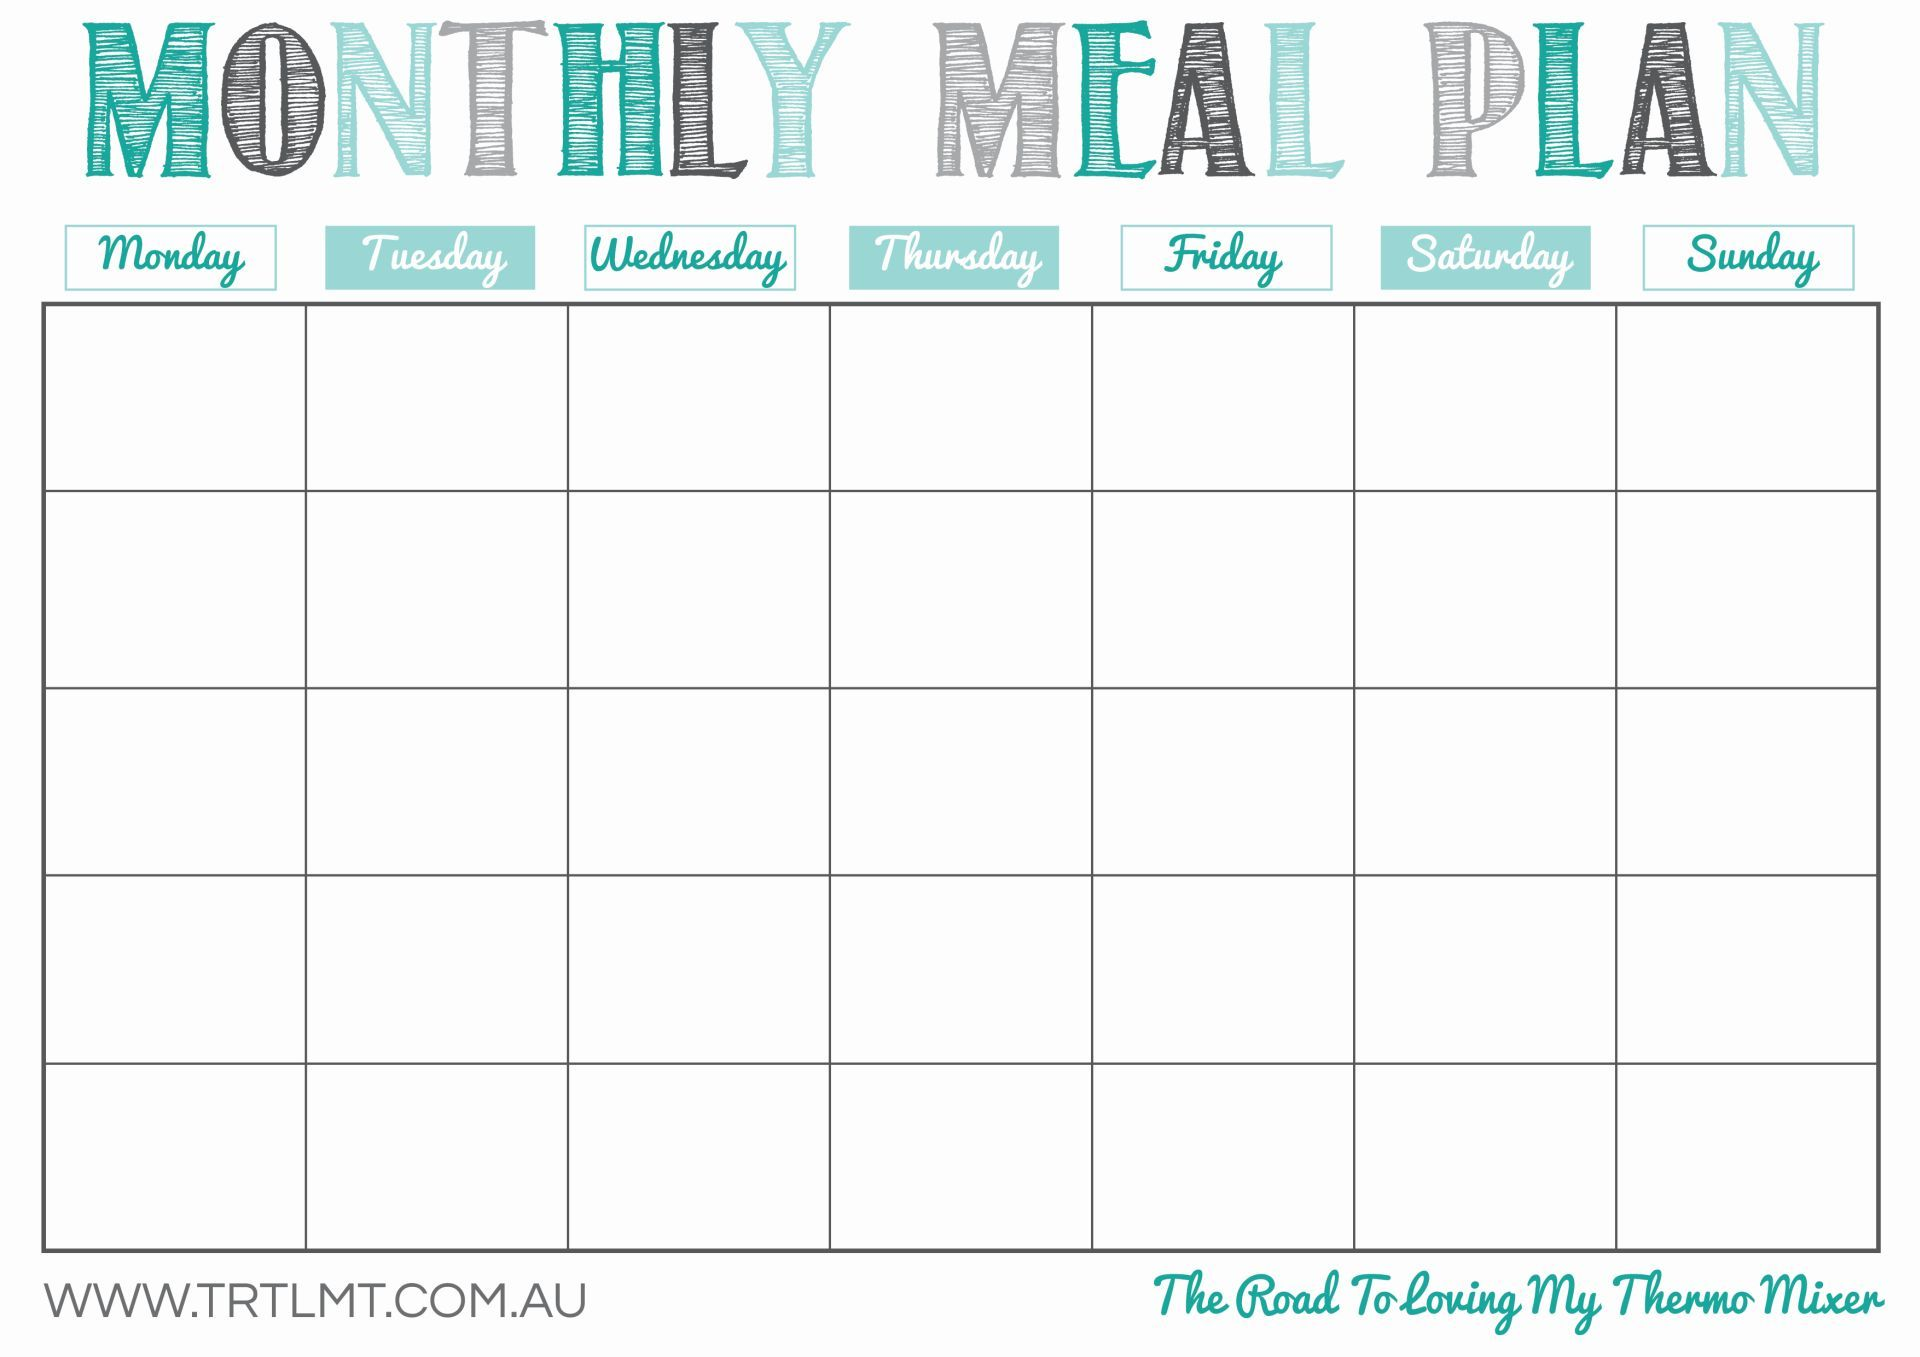 Monthly Meal Plan 2 FB | Crafts! | Pinterest | Meal ...